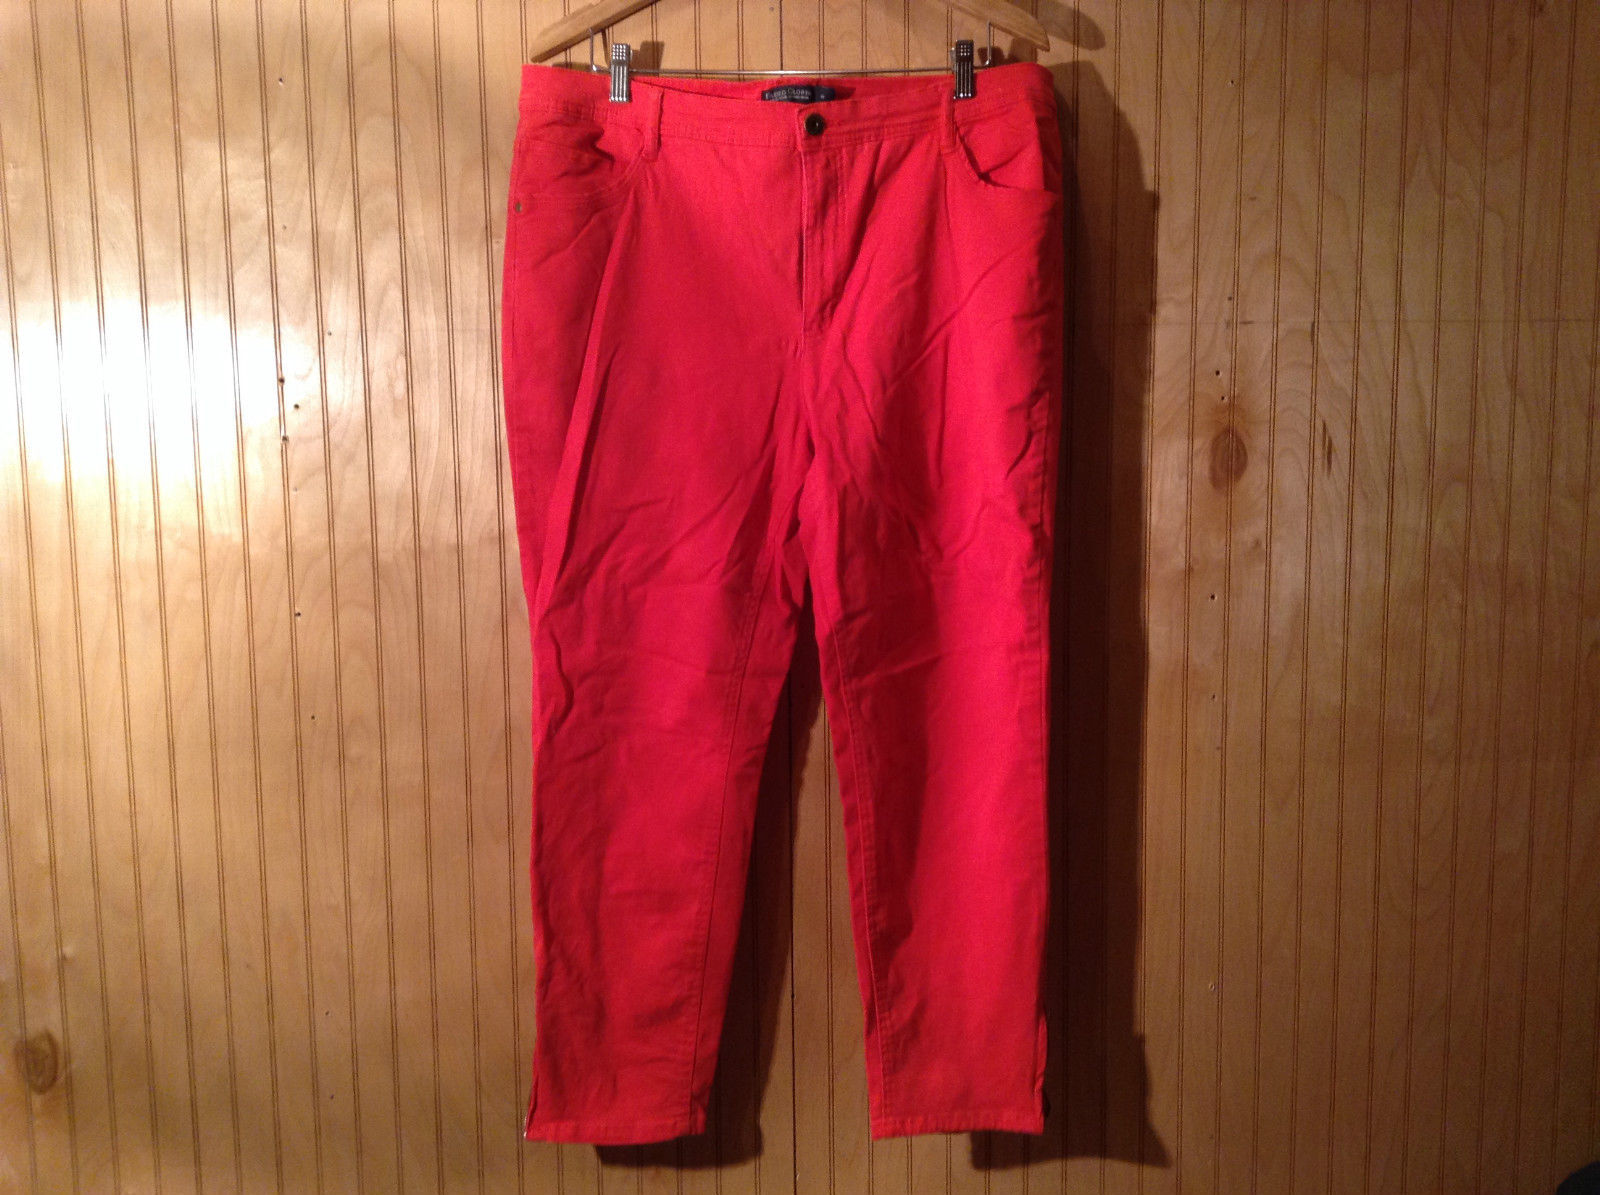 Size 18 Faded Glory Red Casual Pants Front Back Pockets Zipper Button Closure